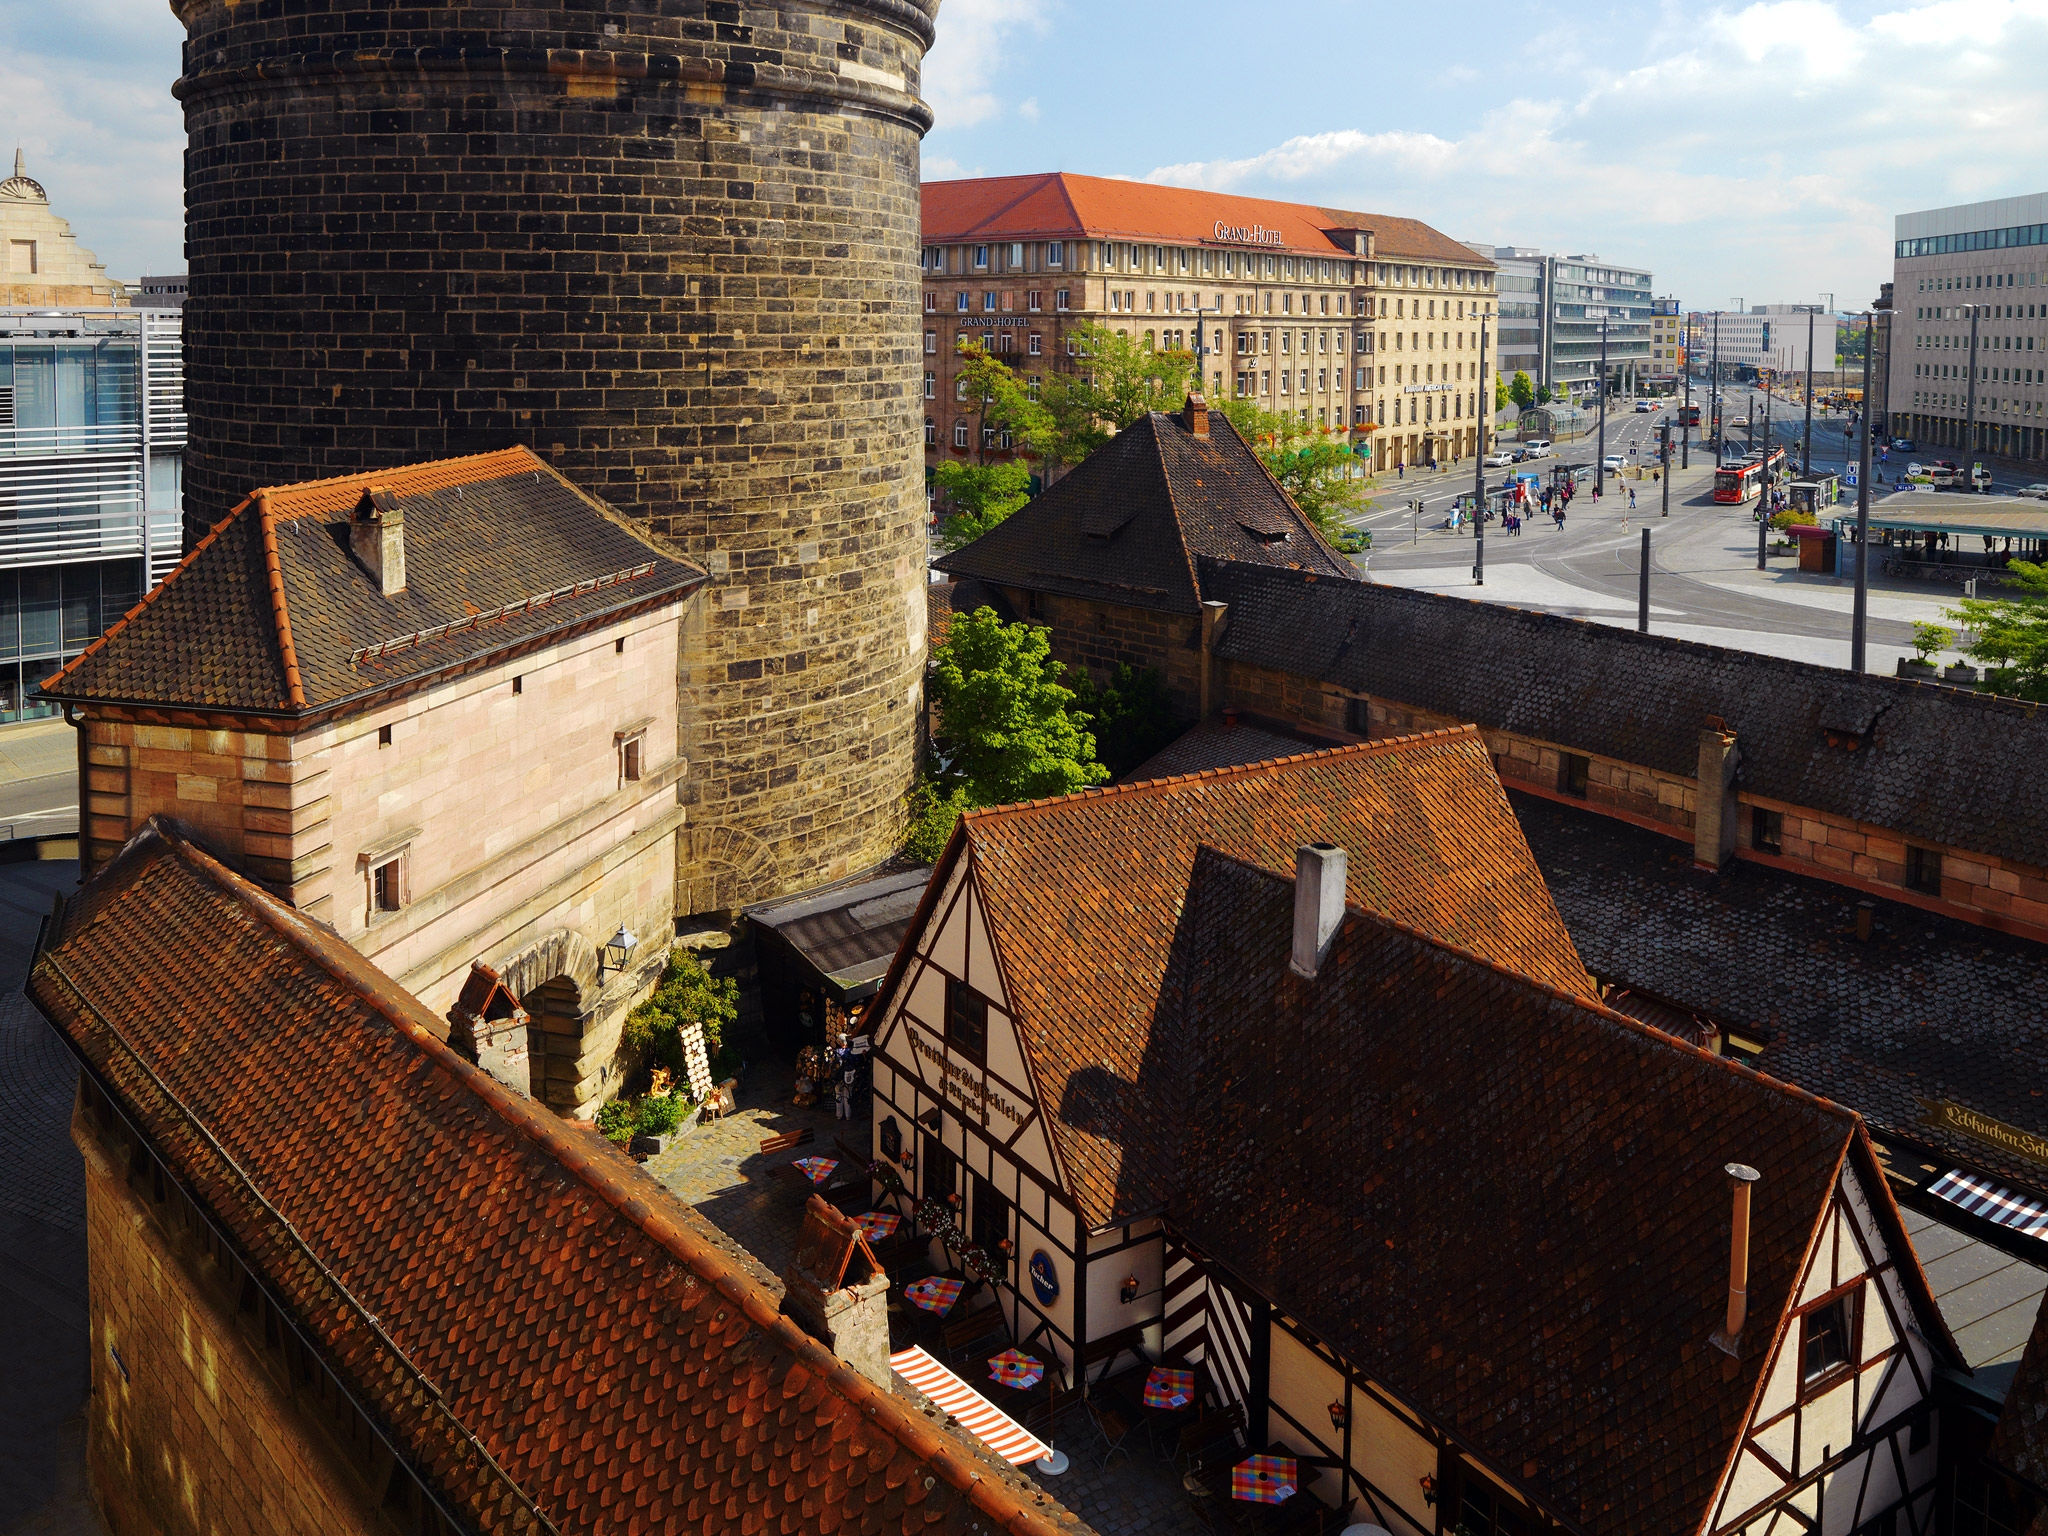 Hotels in Nuremberg City Centre